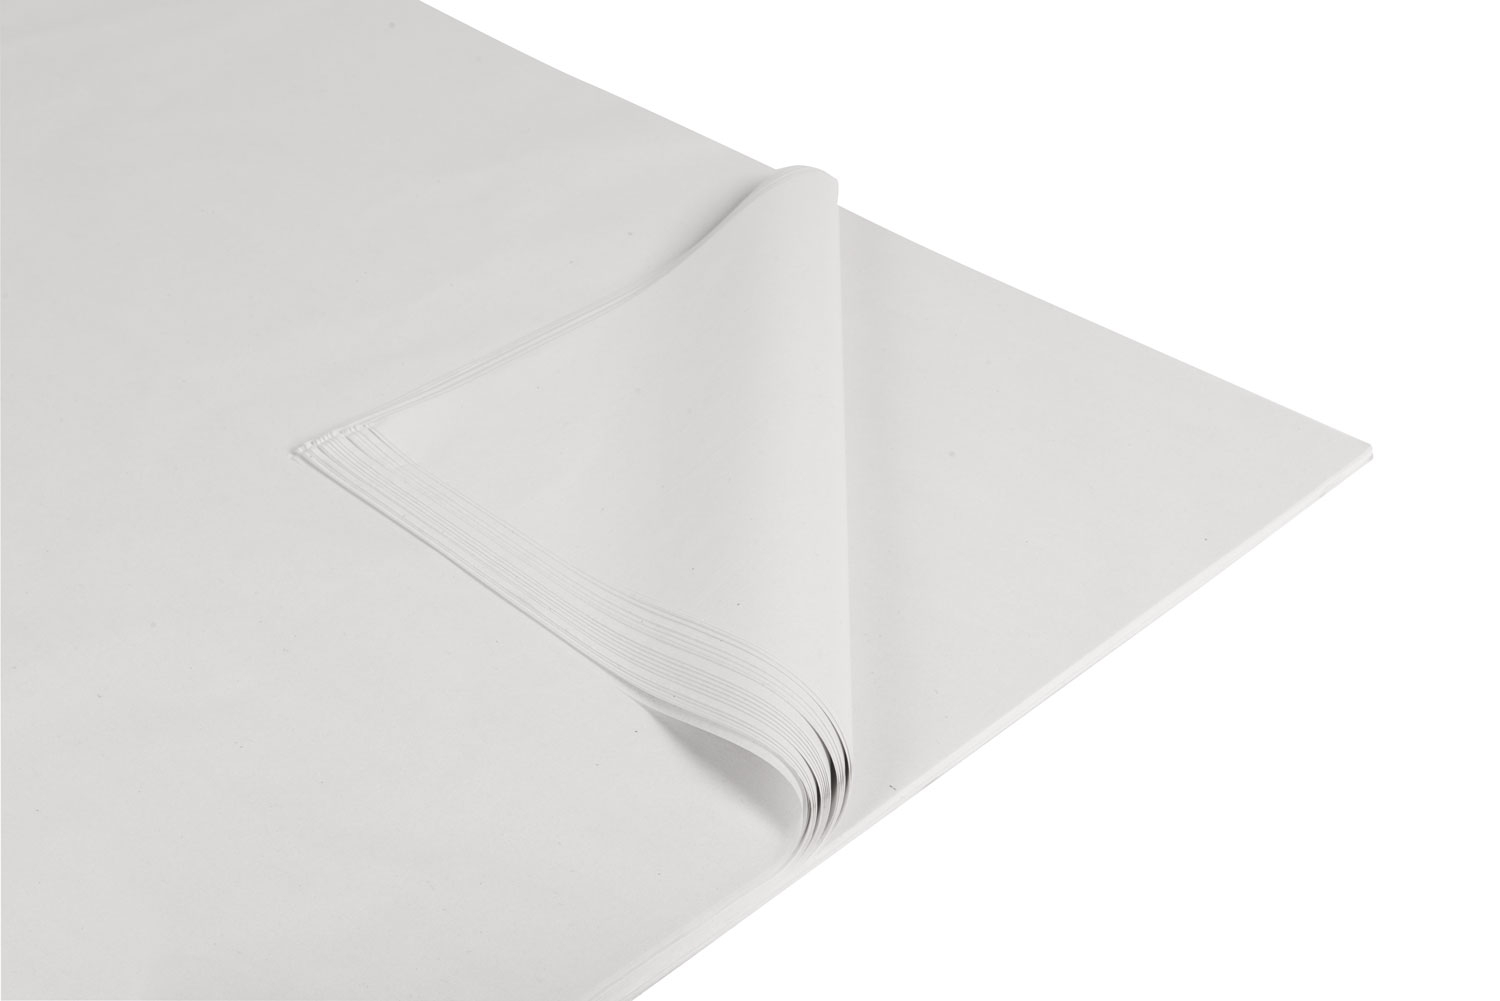 20inch X 30inch White New Offcuts - 5kg packs